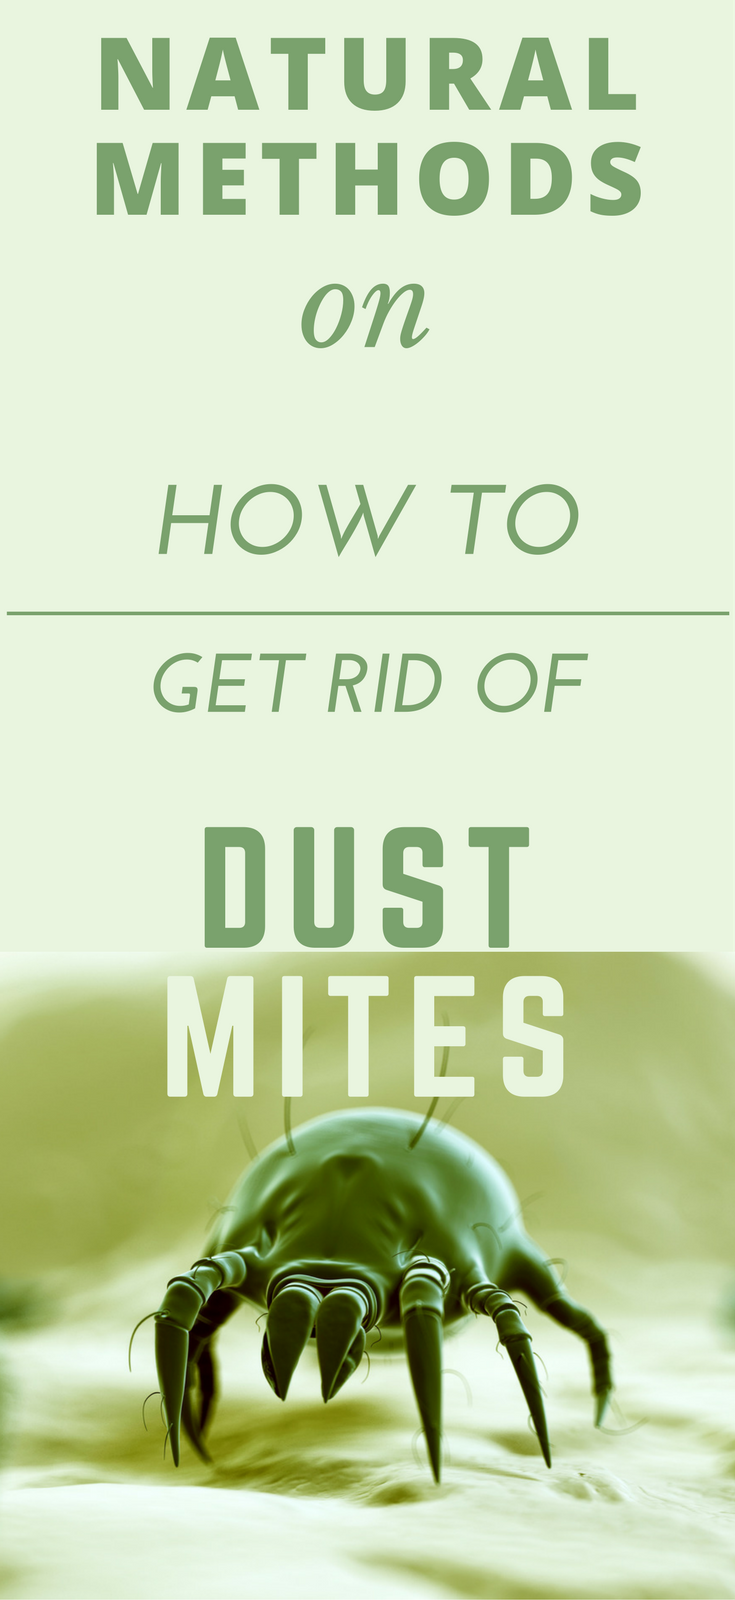 Any Natural Ways To Get Rid Of Flies